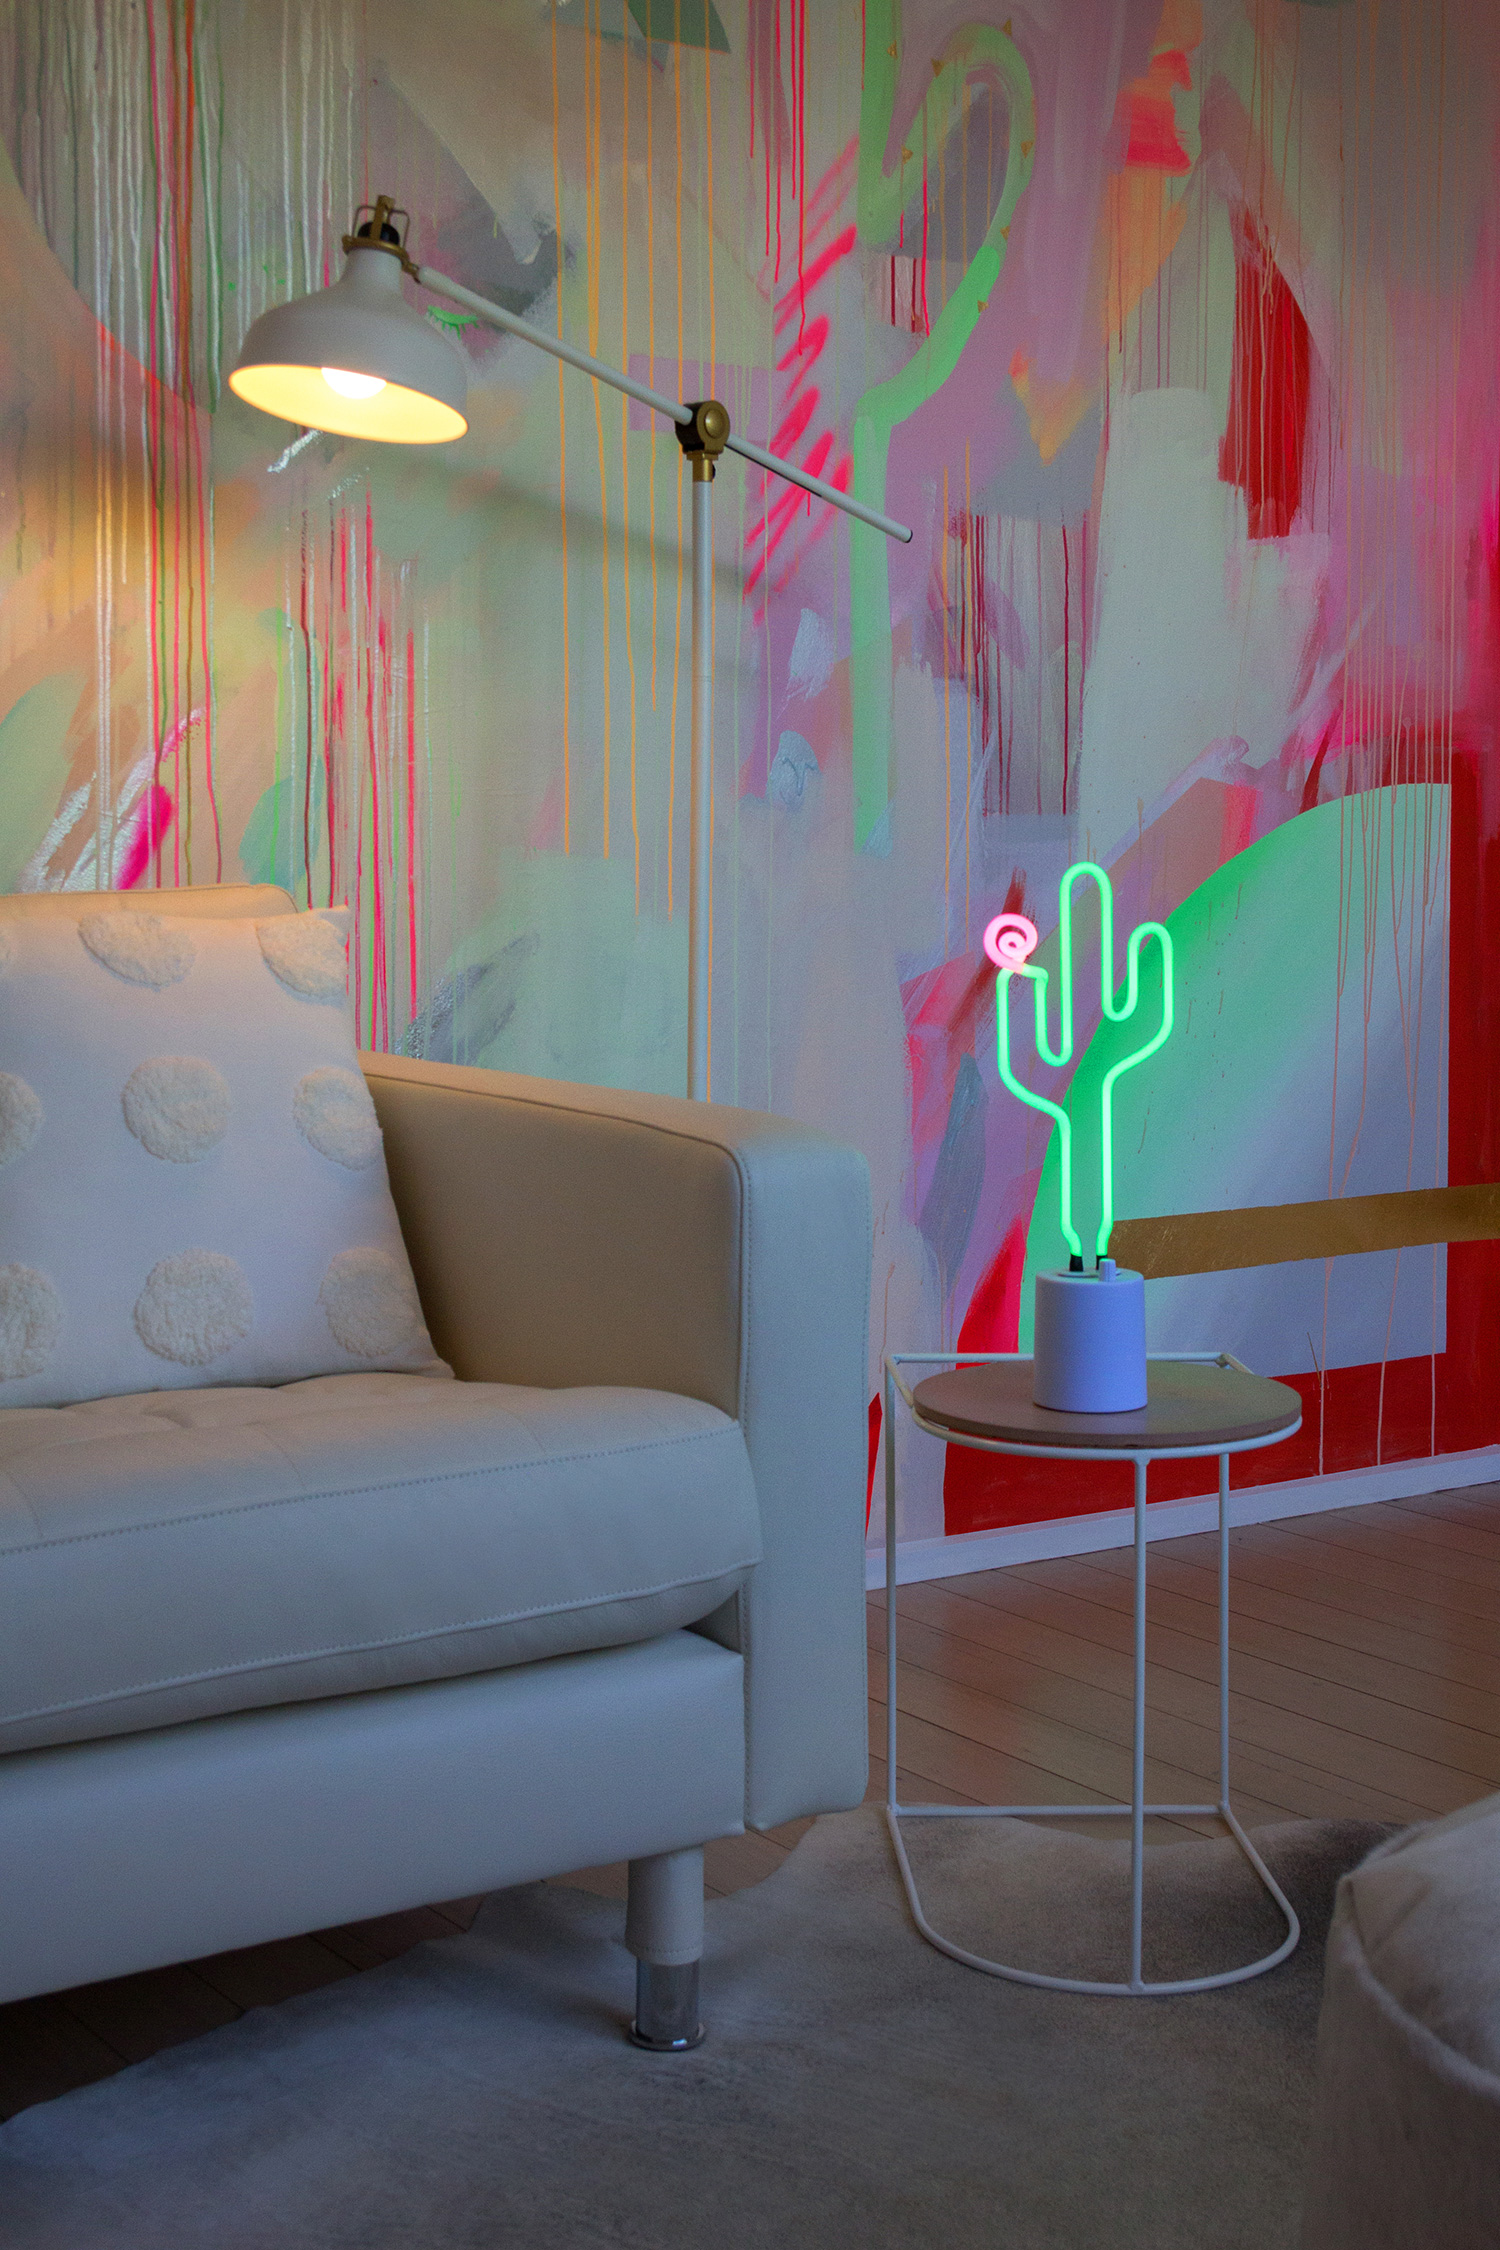 Vibrant galaxy wall mural in bright neon colours, featuring gold leaf shapes and spray painted cactus. Styled in front is a white leather couch and neon cactus lamp.